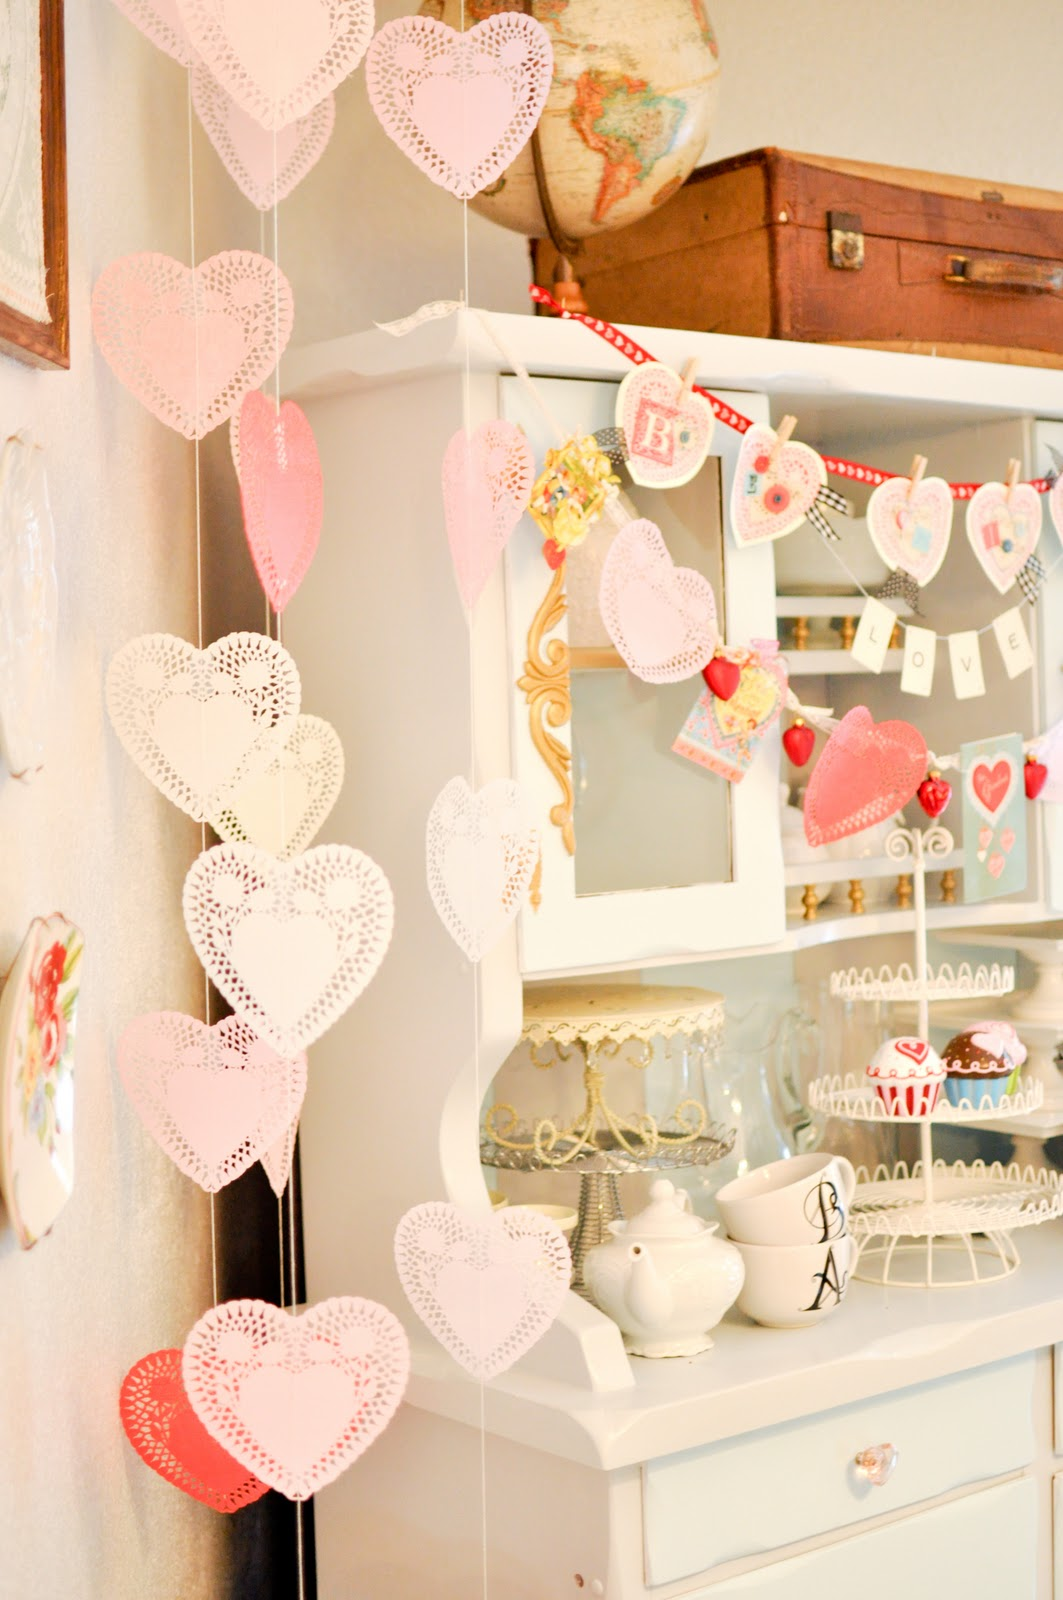 20 valentine 39 s day decorations ideas for your home for Valentine decorations to make at home